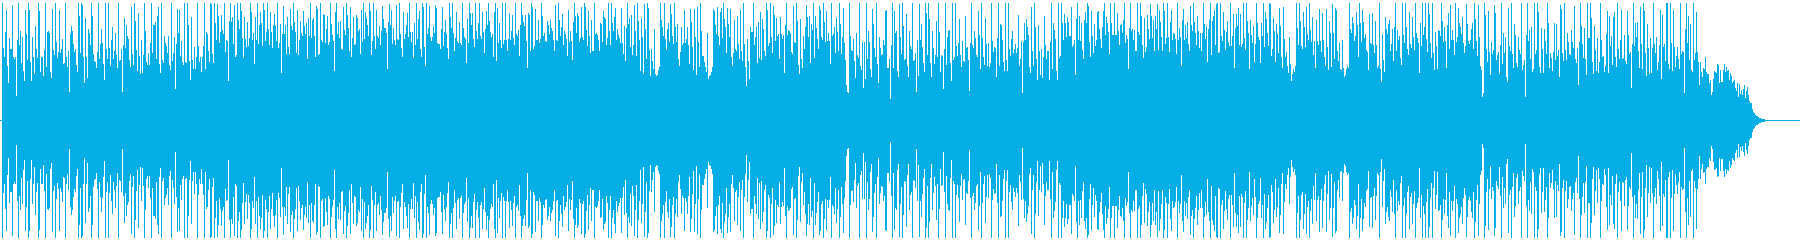 BGM of light and bright melody's reproduced waveform